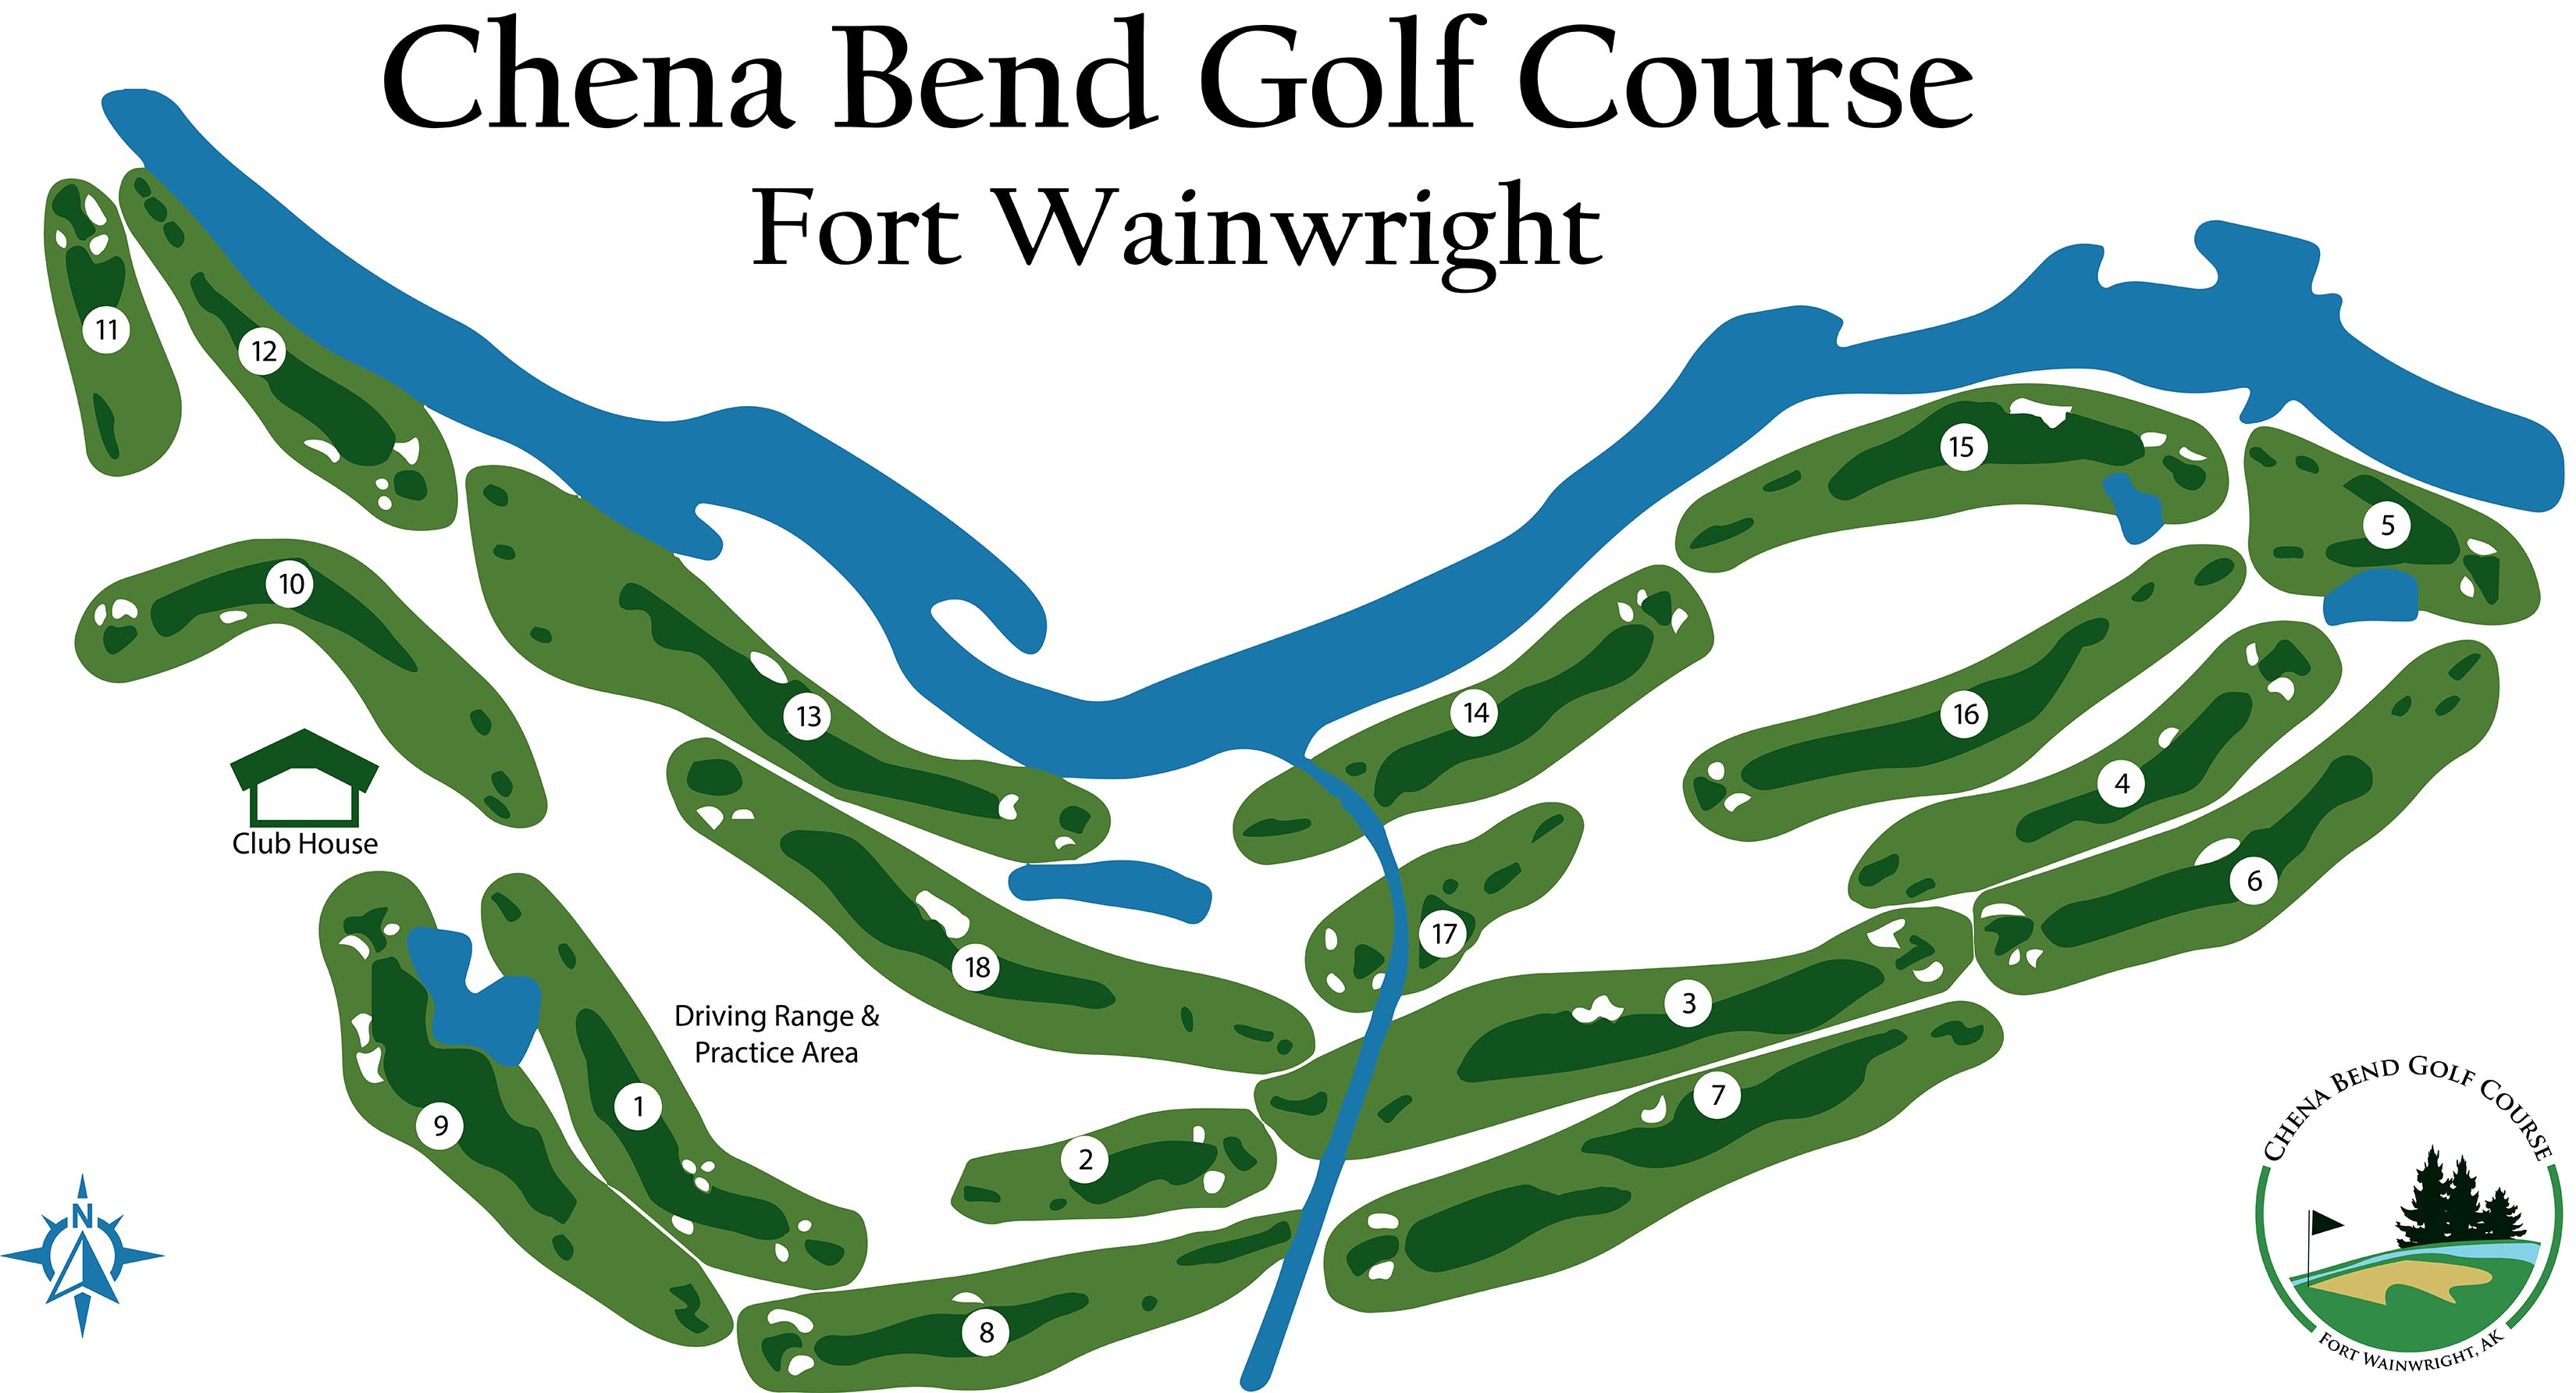 Wainwright_Chena_Bend_Golf_Course_Map_Summer_reduced.jpg